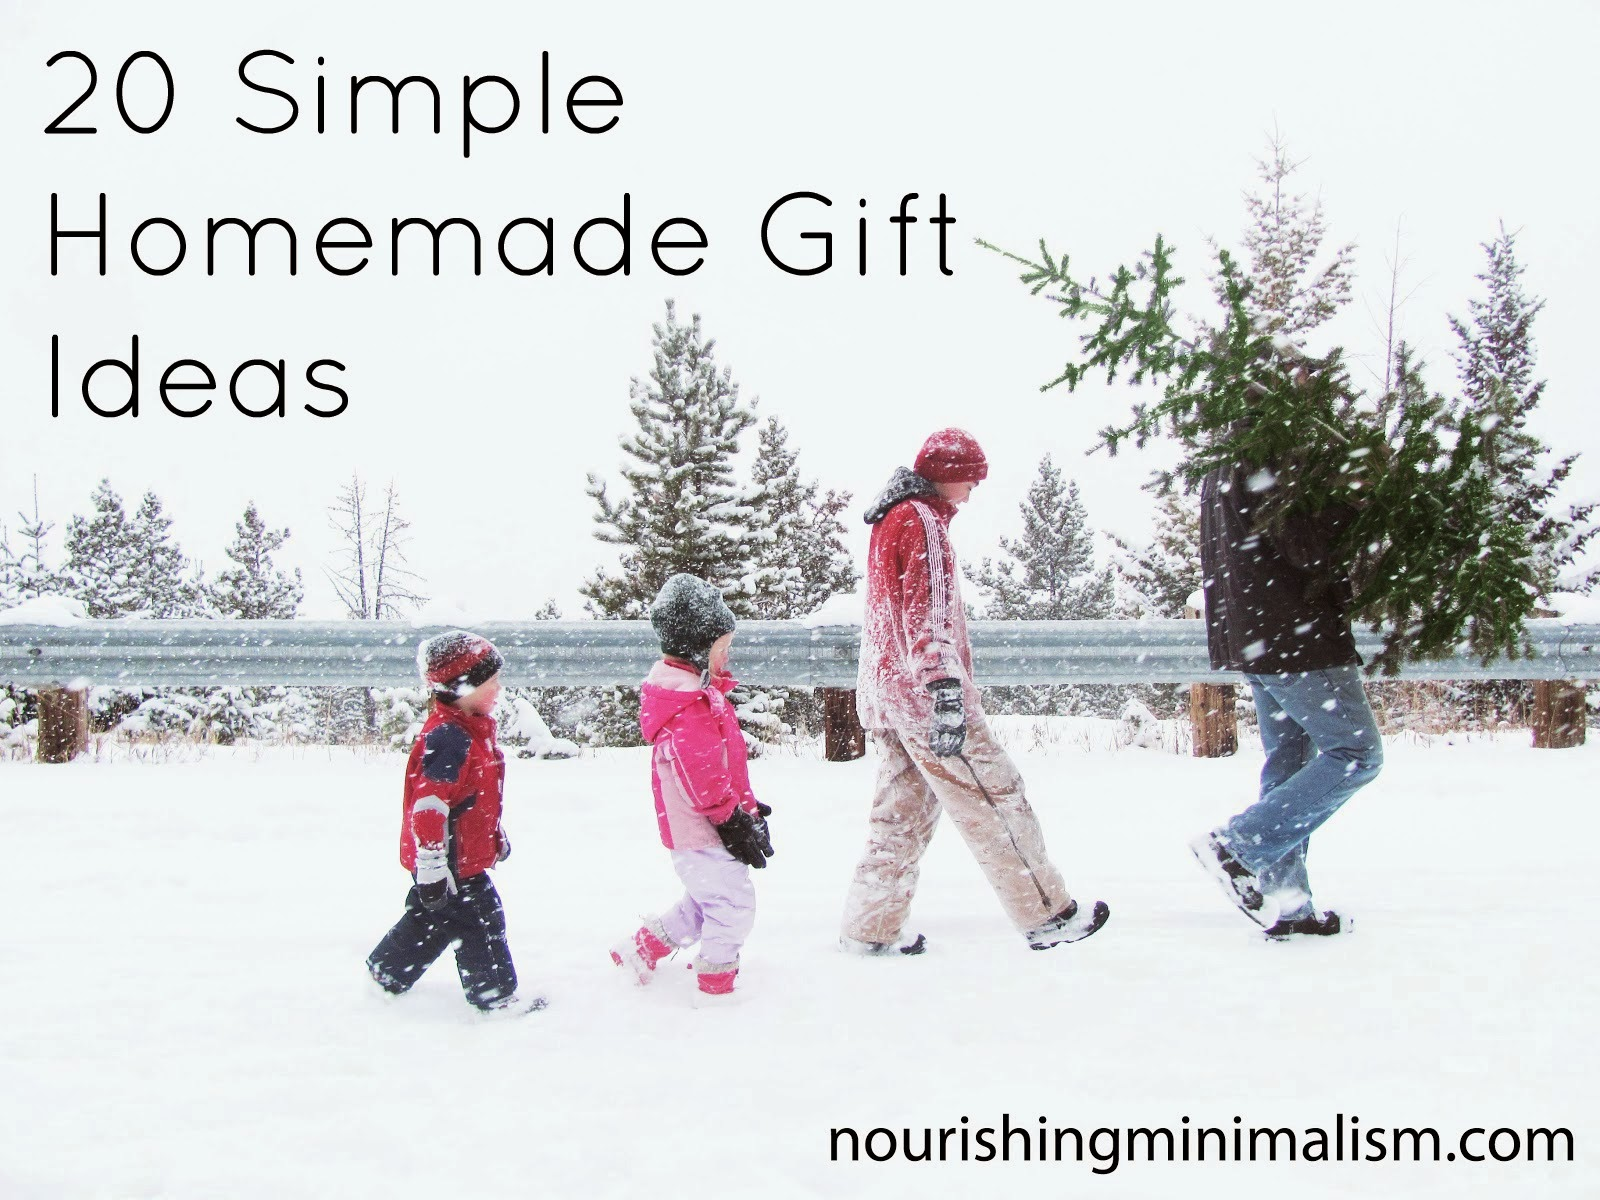 20 Simple Homemade Gift Ideas - Nourishing Minimalism